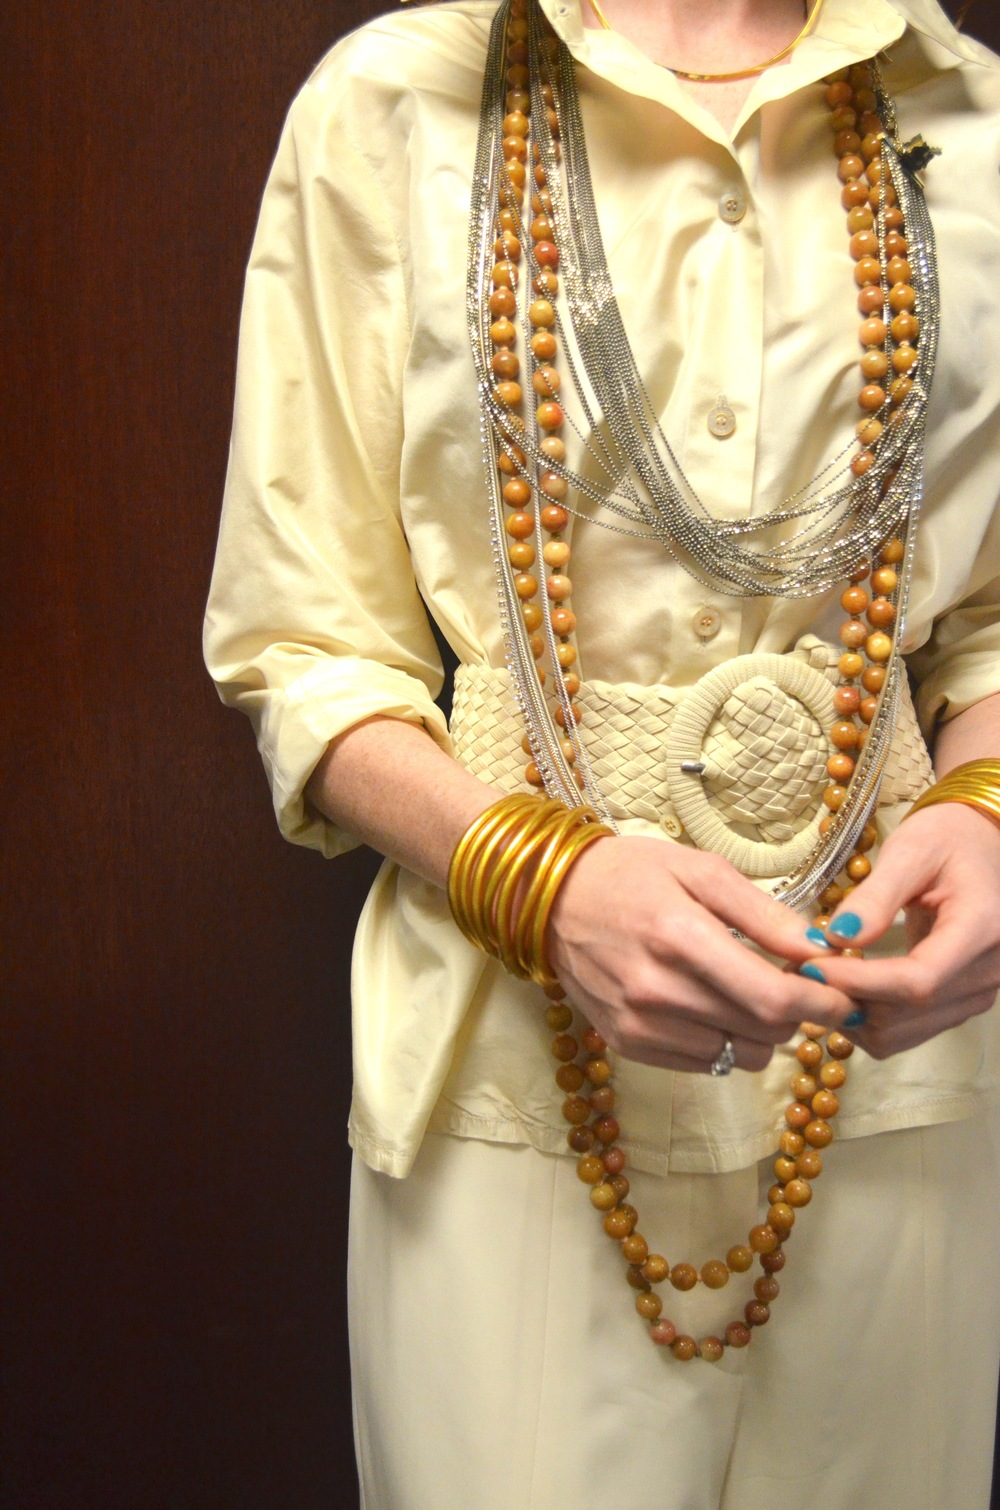 A gold torque, strand necklaces and budhabeads coexist.